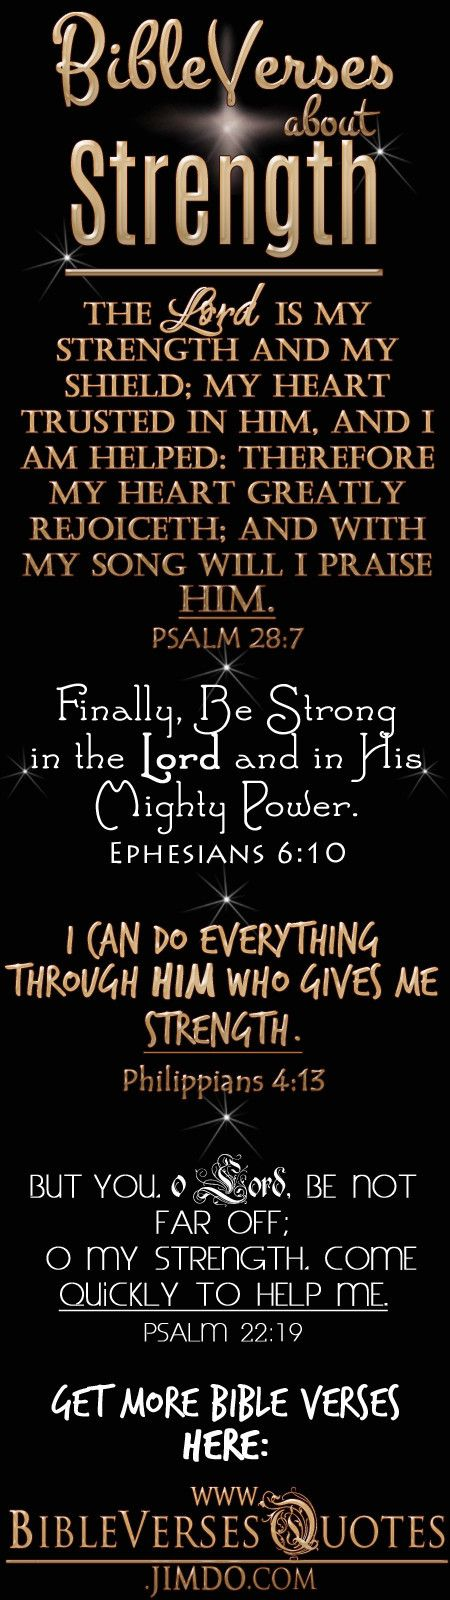 Be encouraged with these Bible Verses about Strength❣ ツ #Amen #BibleVerse #BeEncouraged #BeBlessed